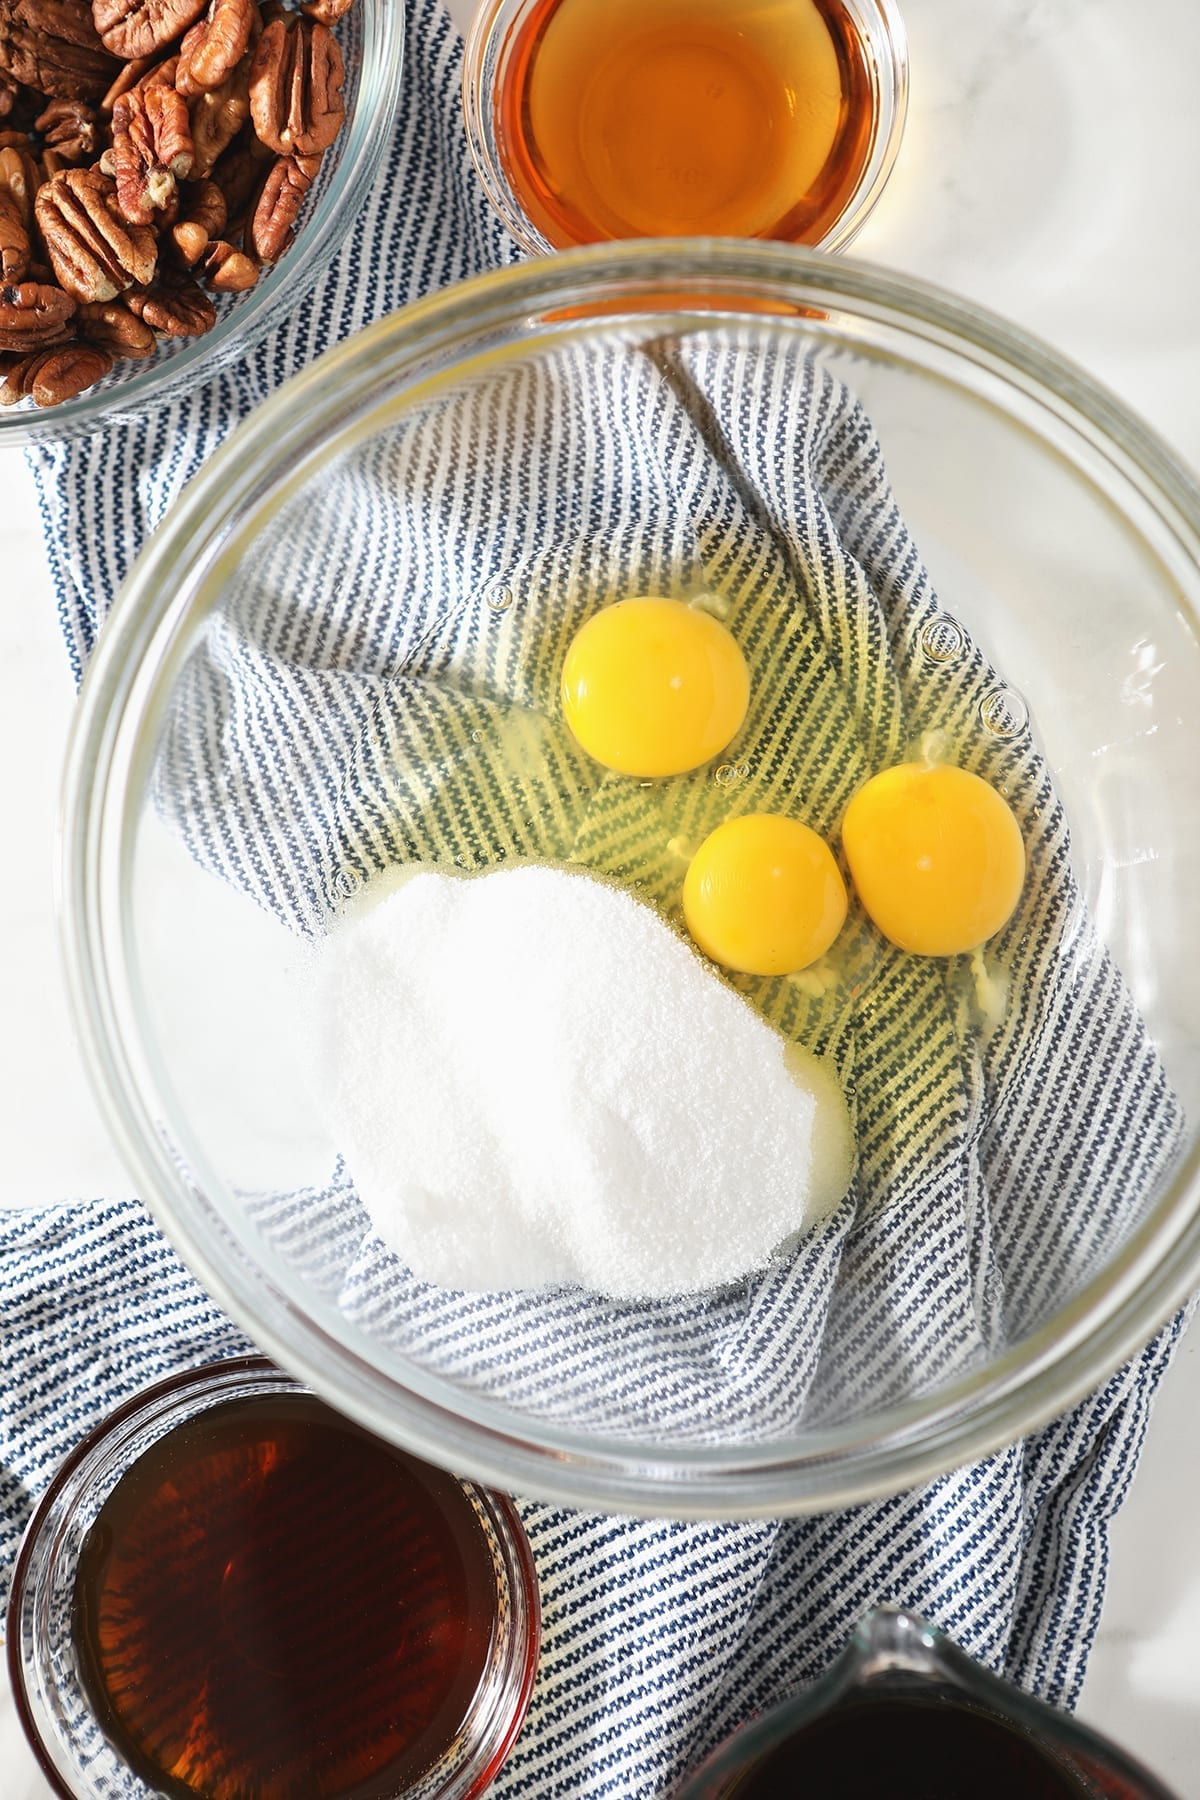 Overhead view of sugar and three broken eggs in glass bowl